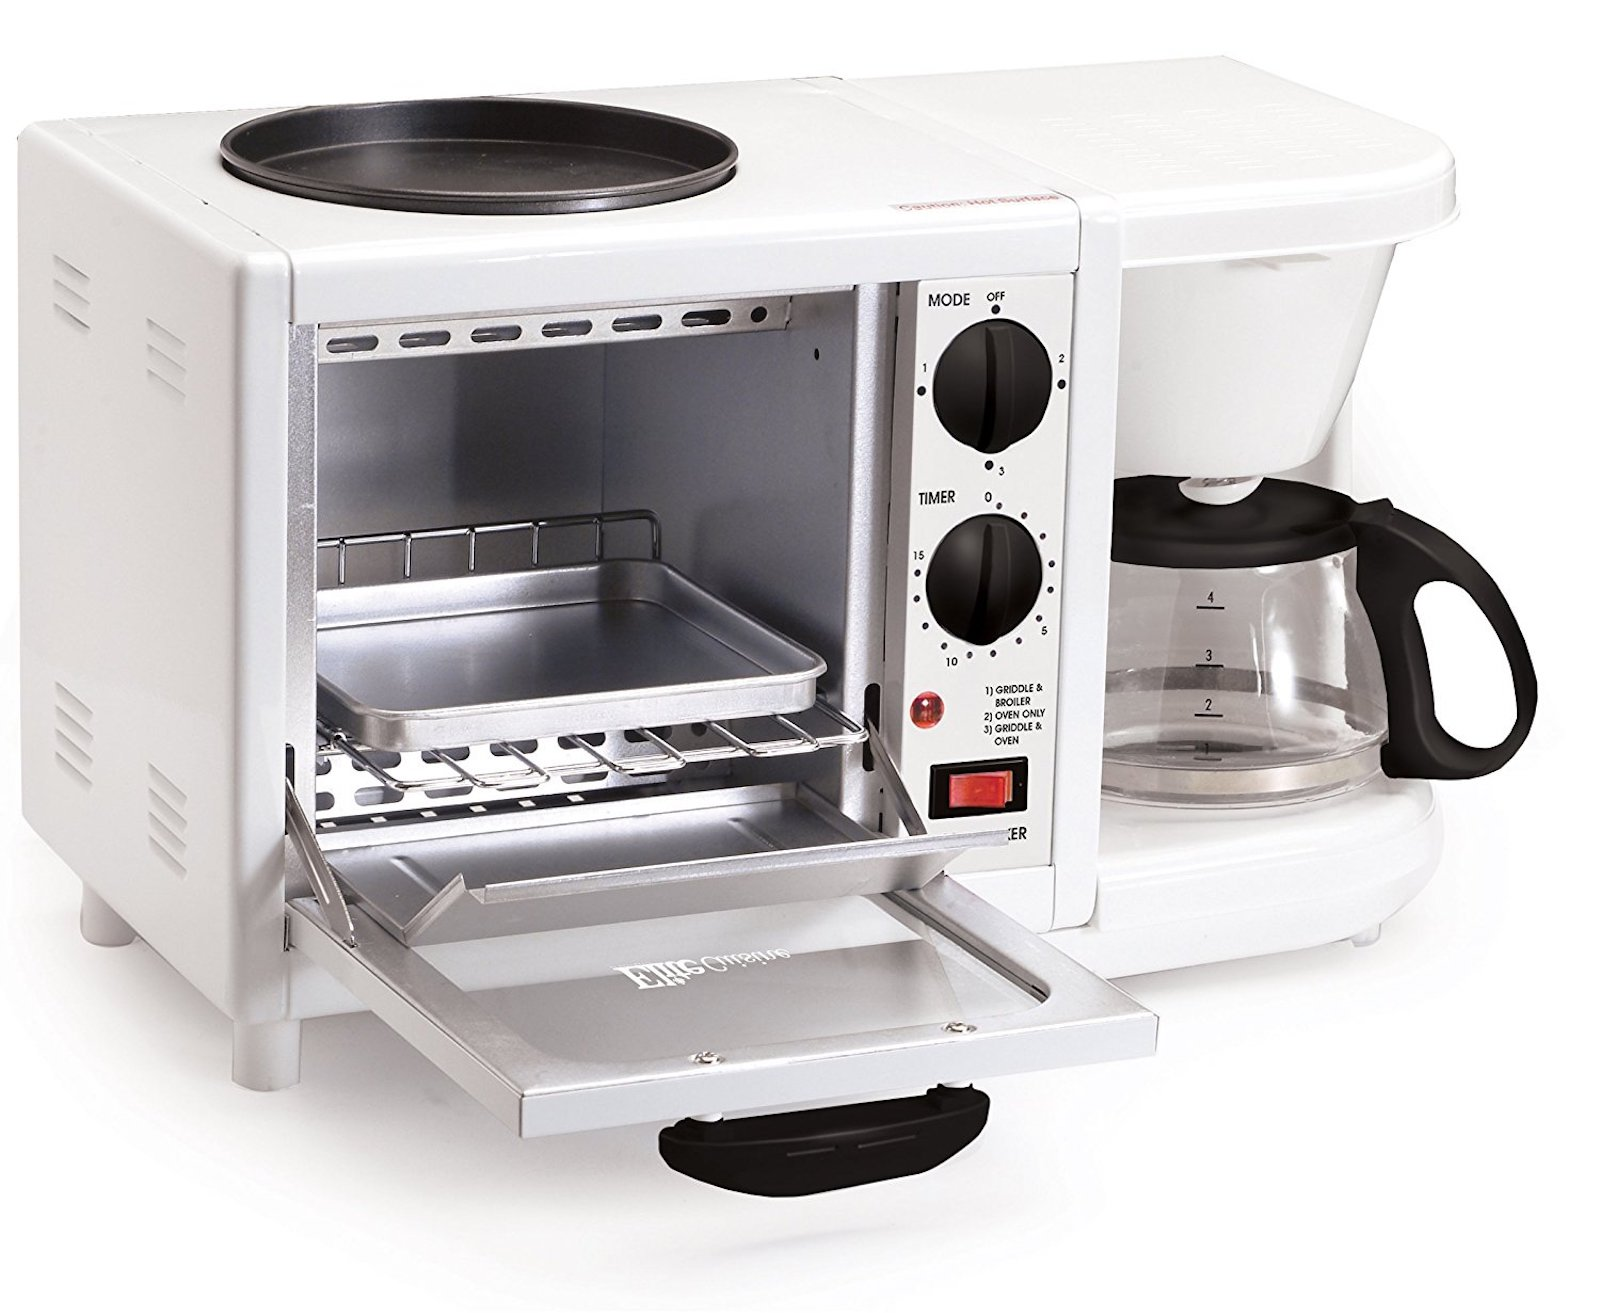 3-in-1 Multifunction Breakfast Center